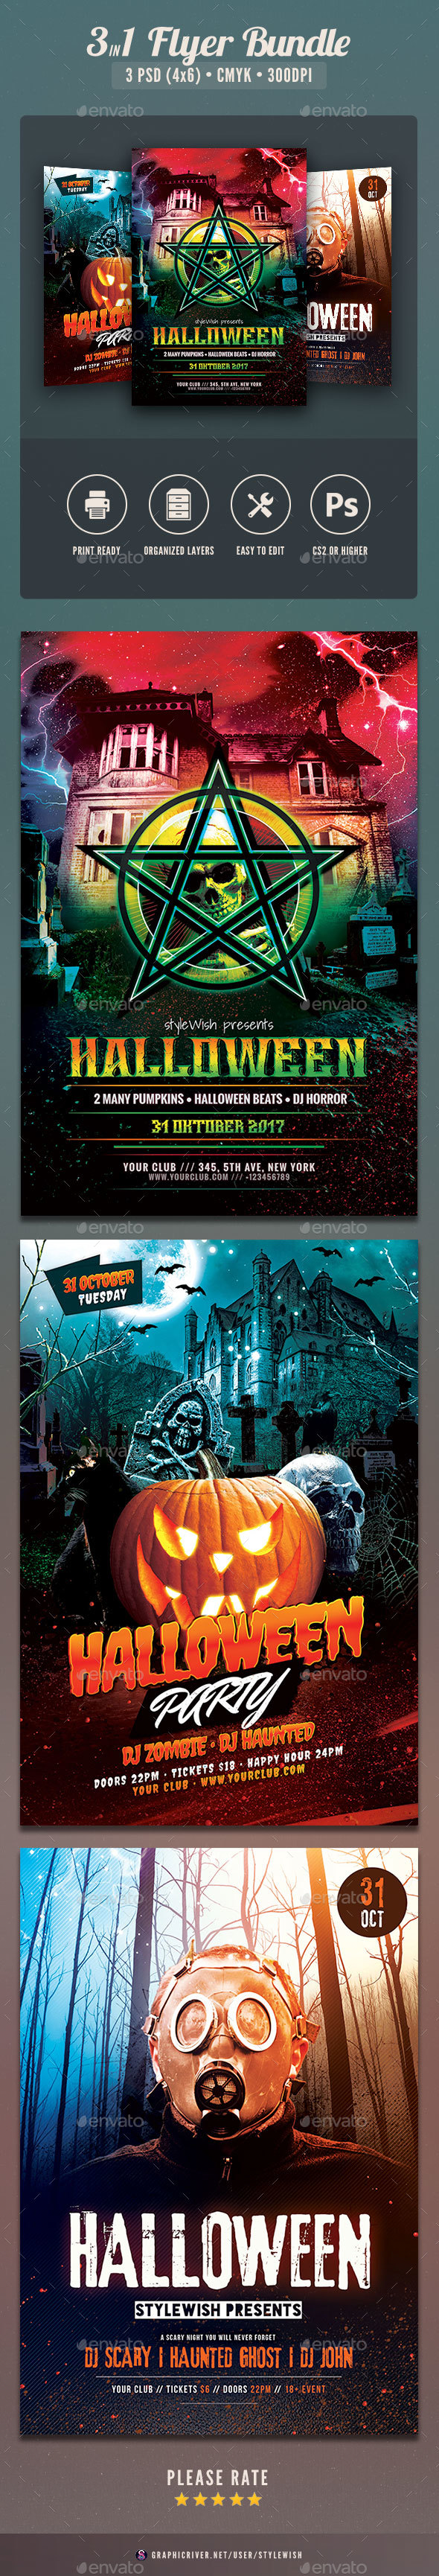 Halloween Flyer Bundle Vol.04 - Clubs & Parties Events